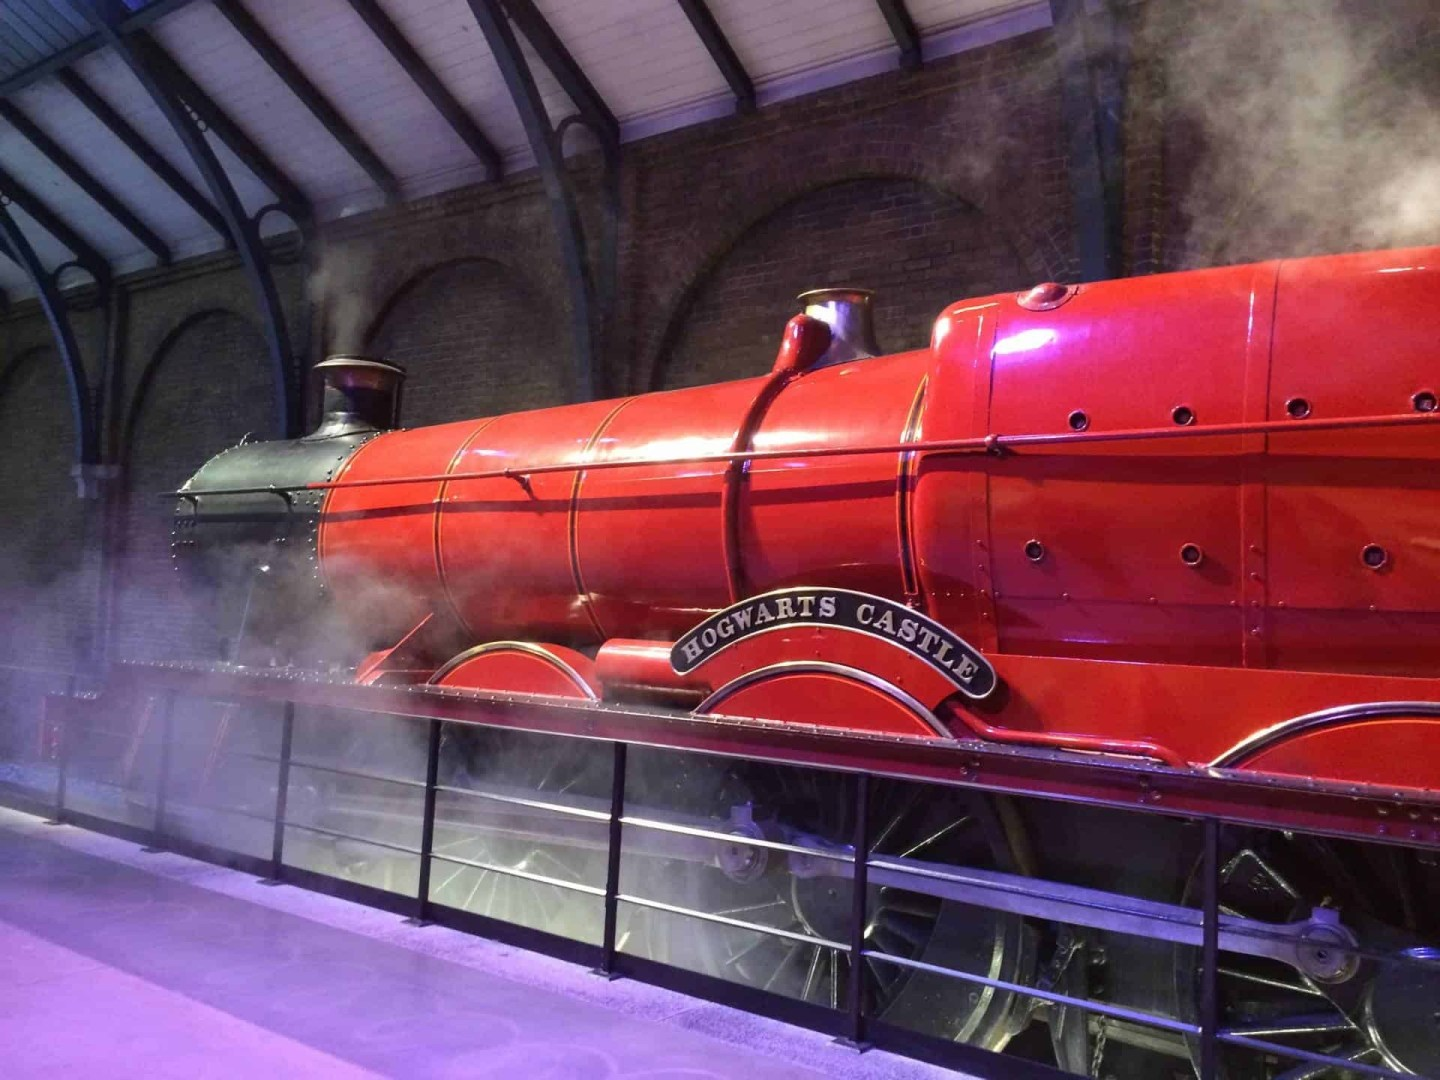 The Harry Potter Studio Tour really is magical